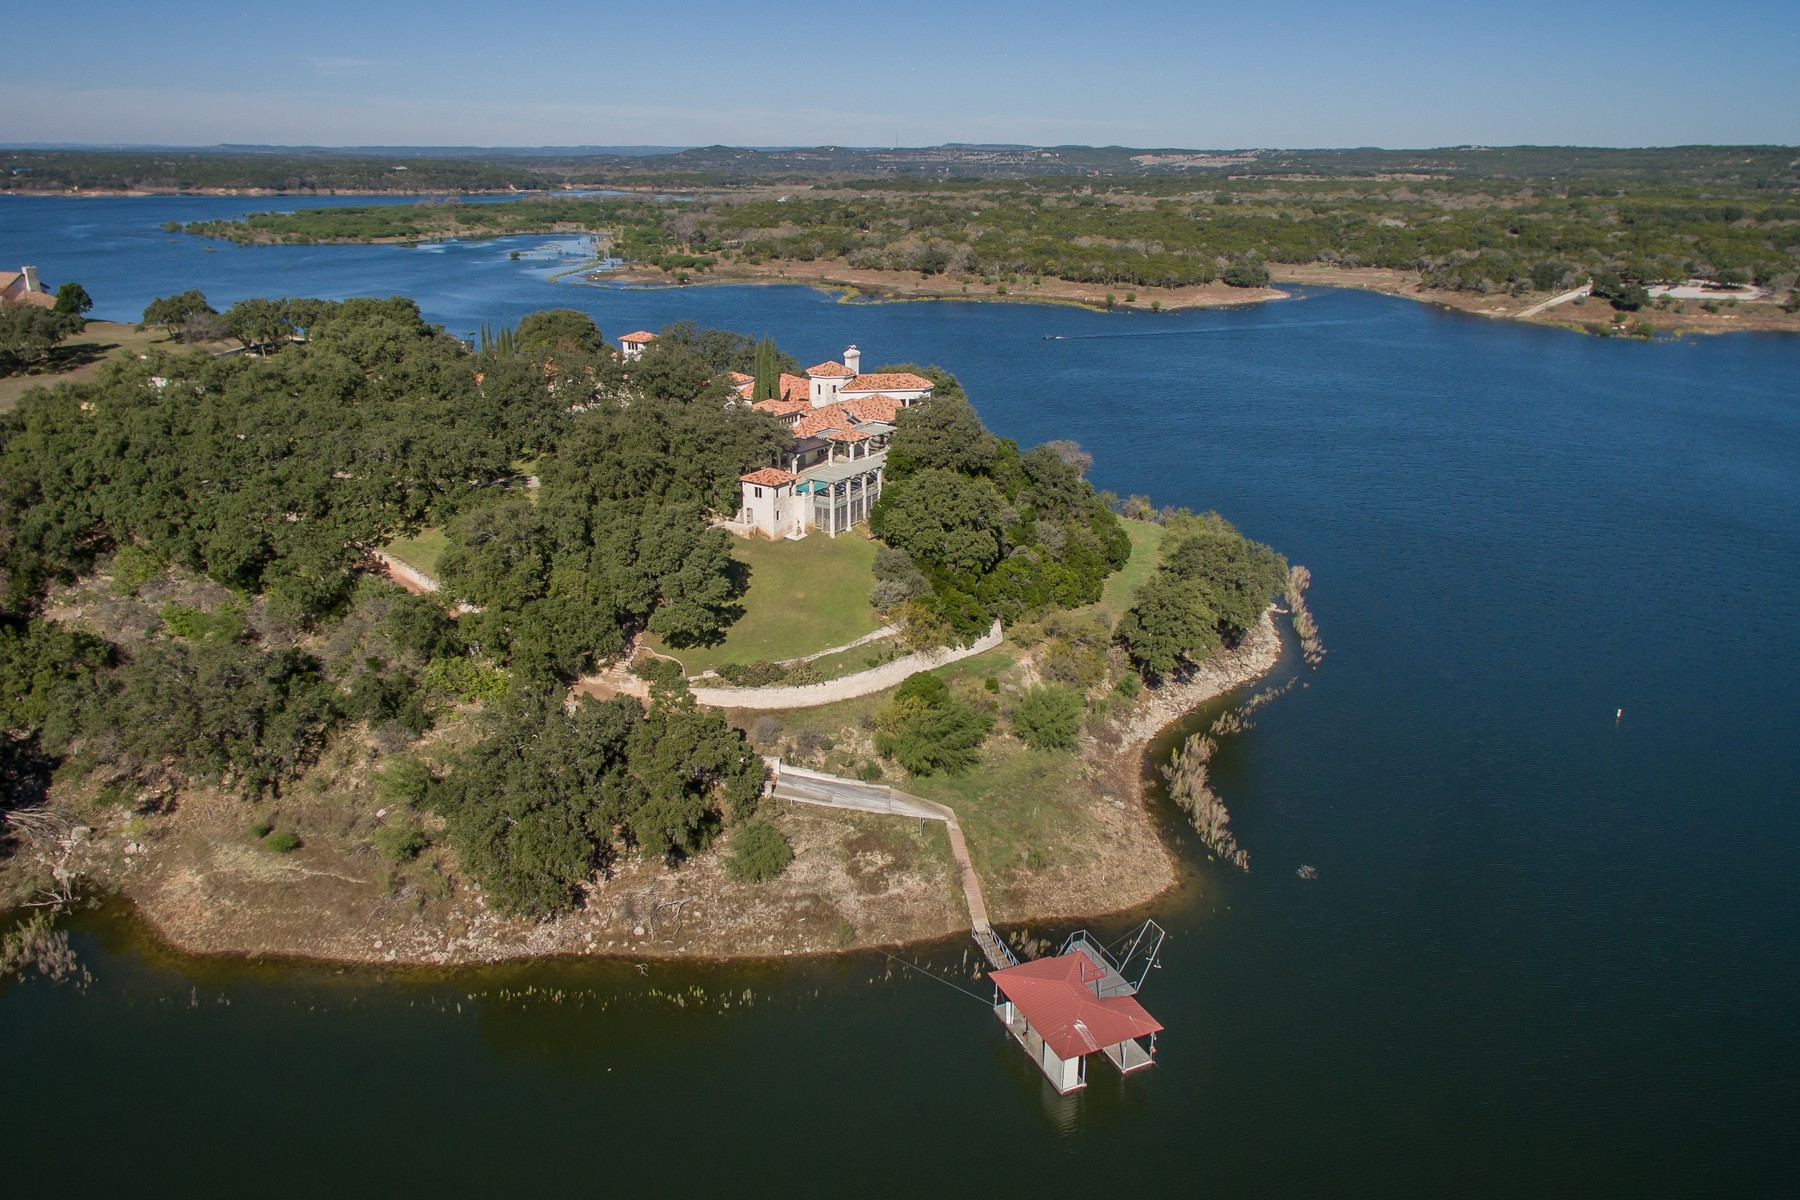 Casa Unifamiliar por un Venta en Gated Estate on Lake Travis Peninsula 26100 Countryside Dr Spicewood, Texas 78669 Estados Unidos